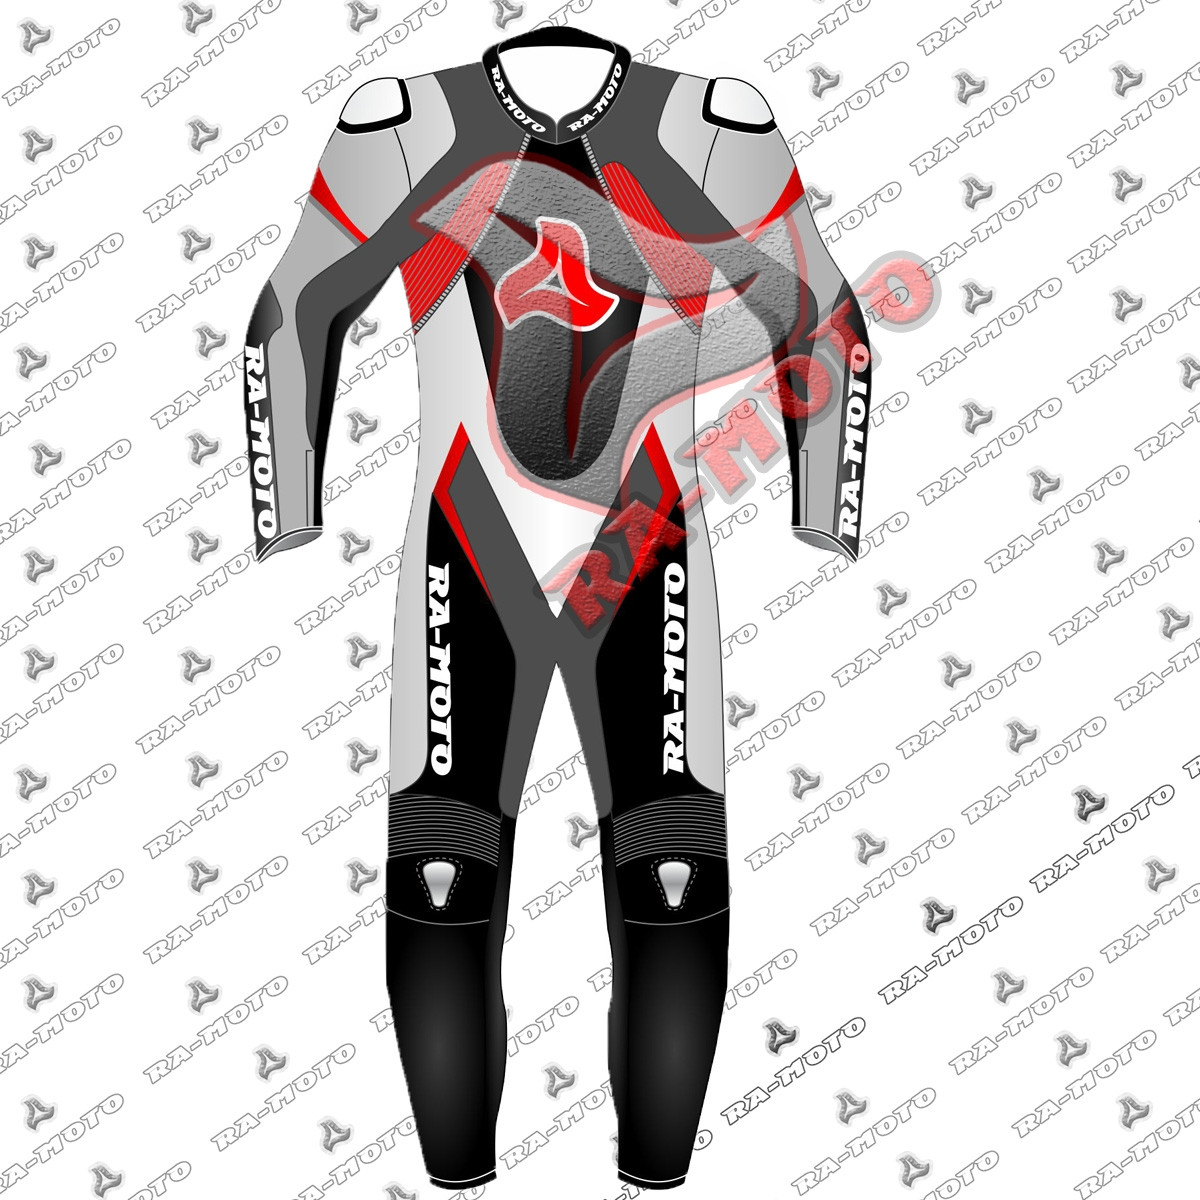 RA-15331  Fire Downhill leather  suit